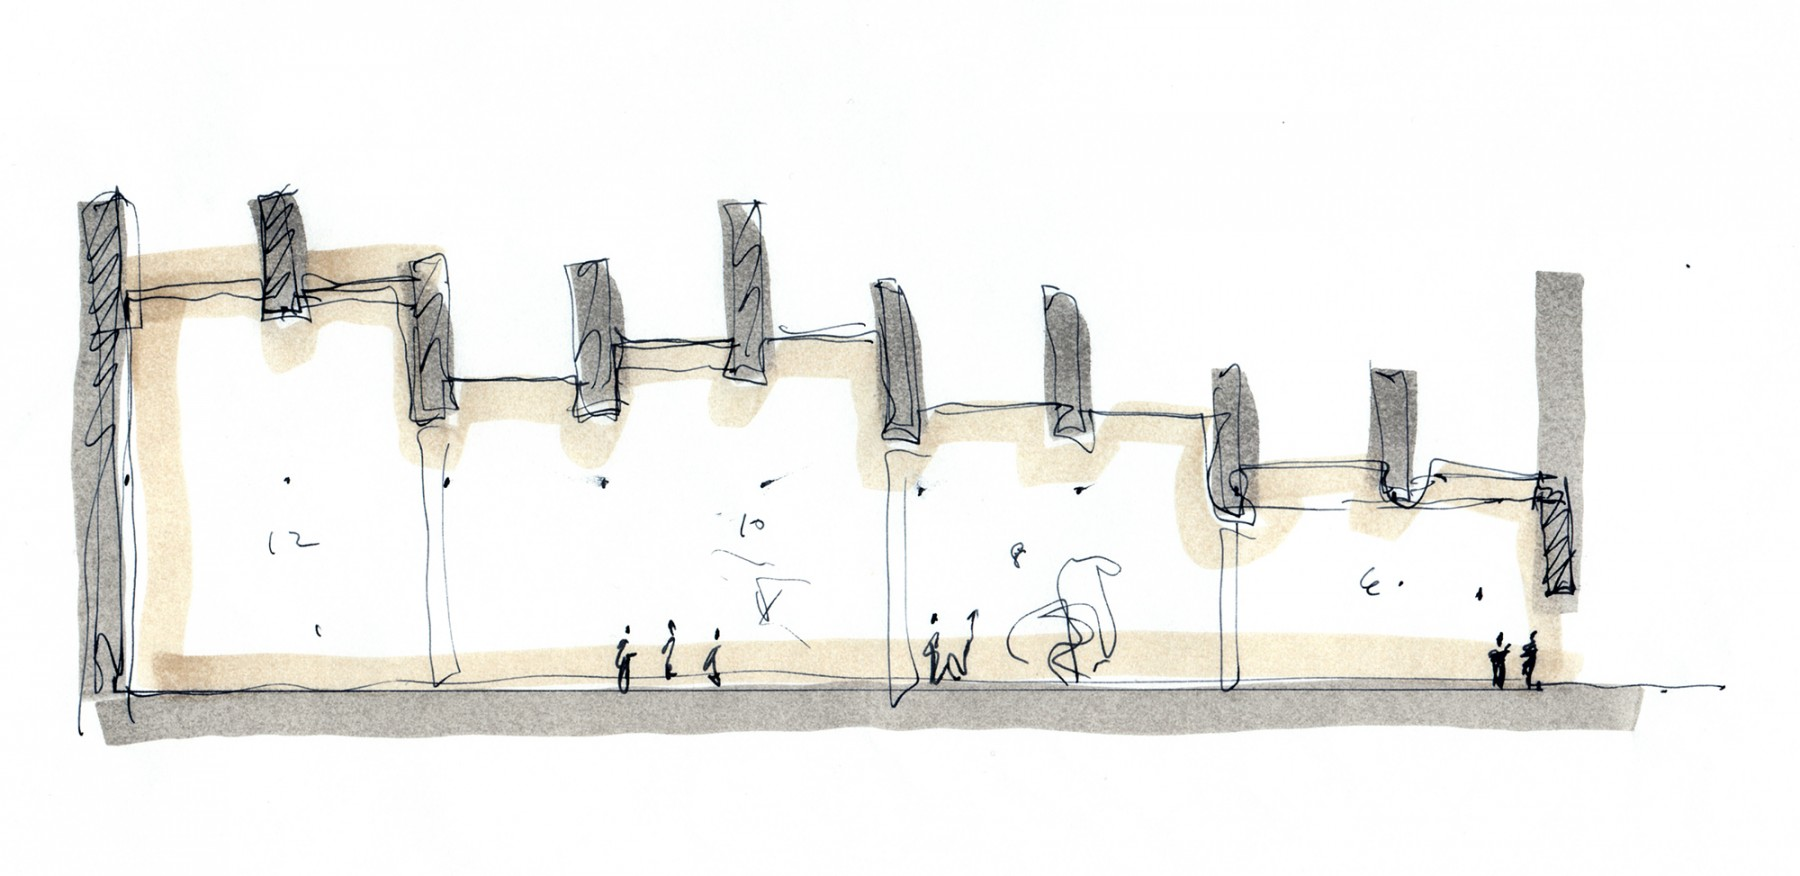 Victoria-and-Albert-Museum-V&A-competition-Exhibition-Road-gallery-London-Sir-Aston-Webb-design-short-list-Jamie-Fobert-architects-sketch